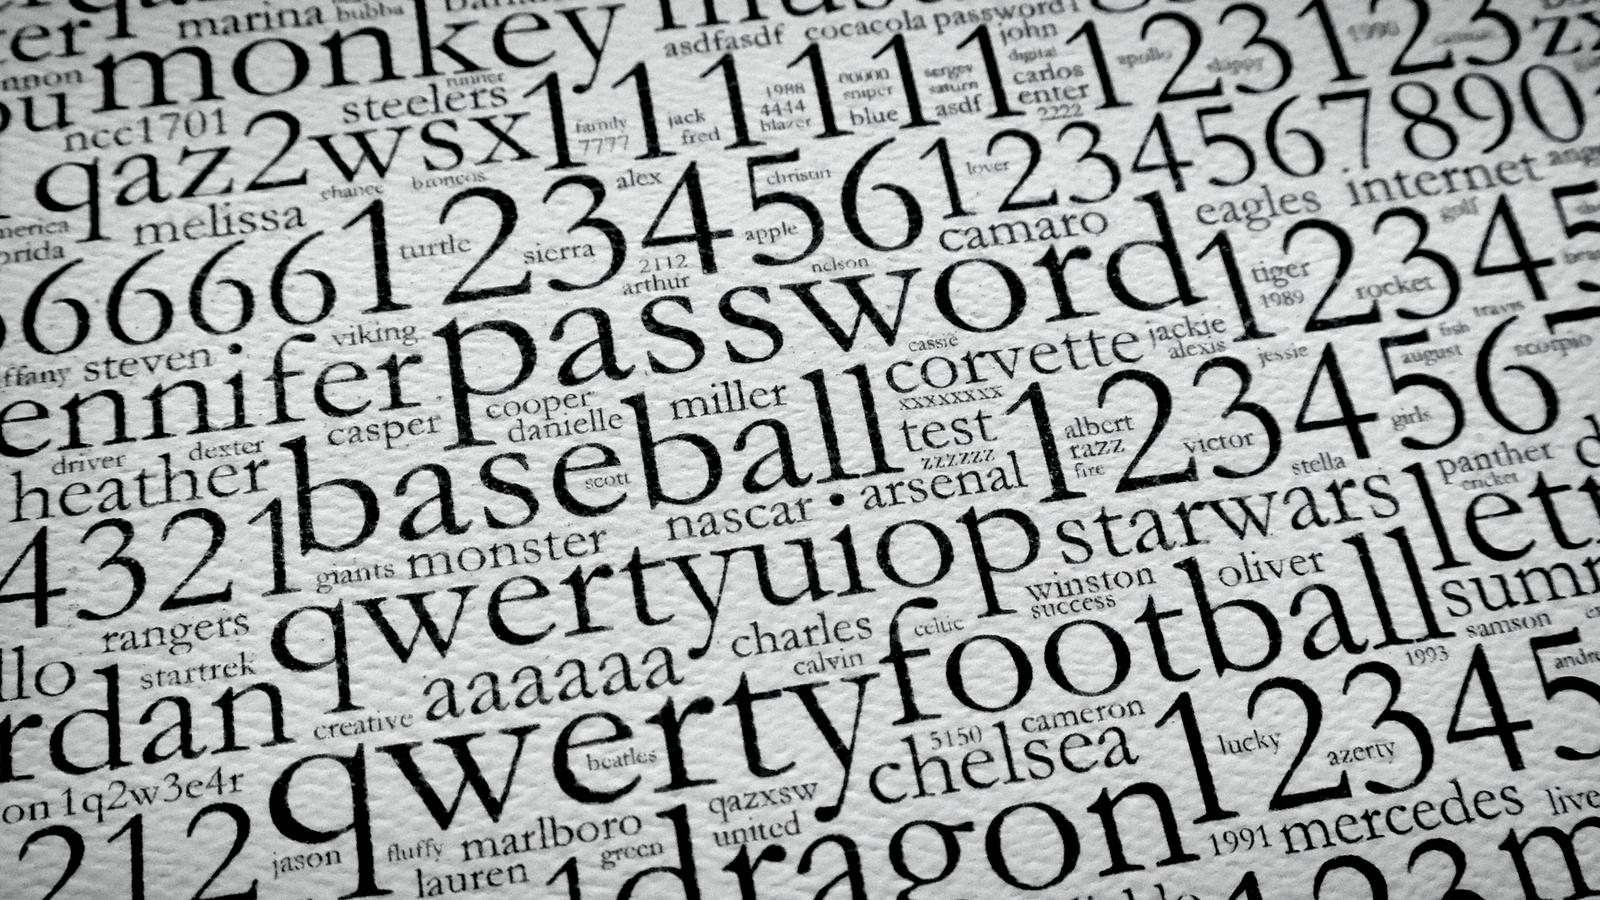 QnA VBage How to Secure Your Accounts After the Massive 'Collection #1' Password Breach